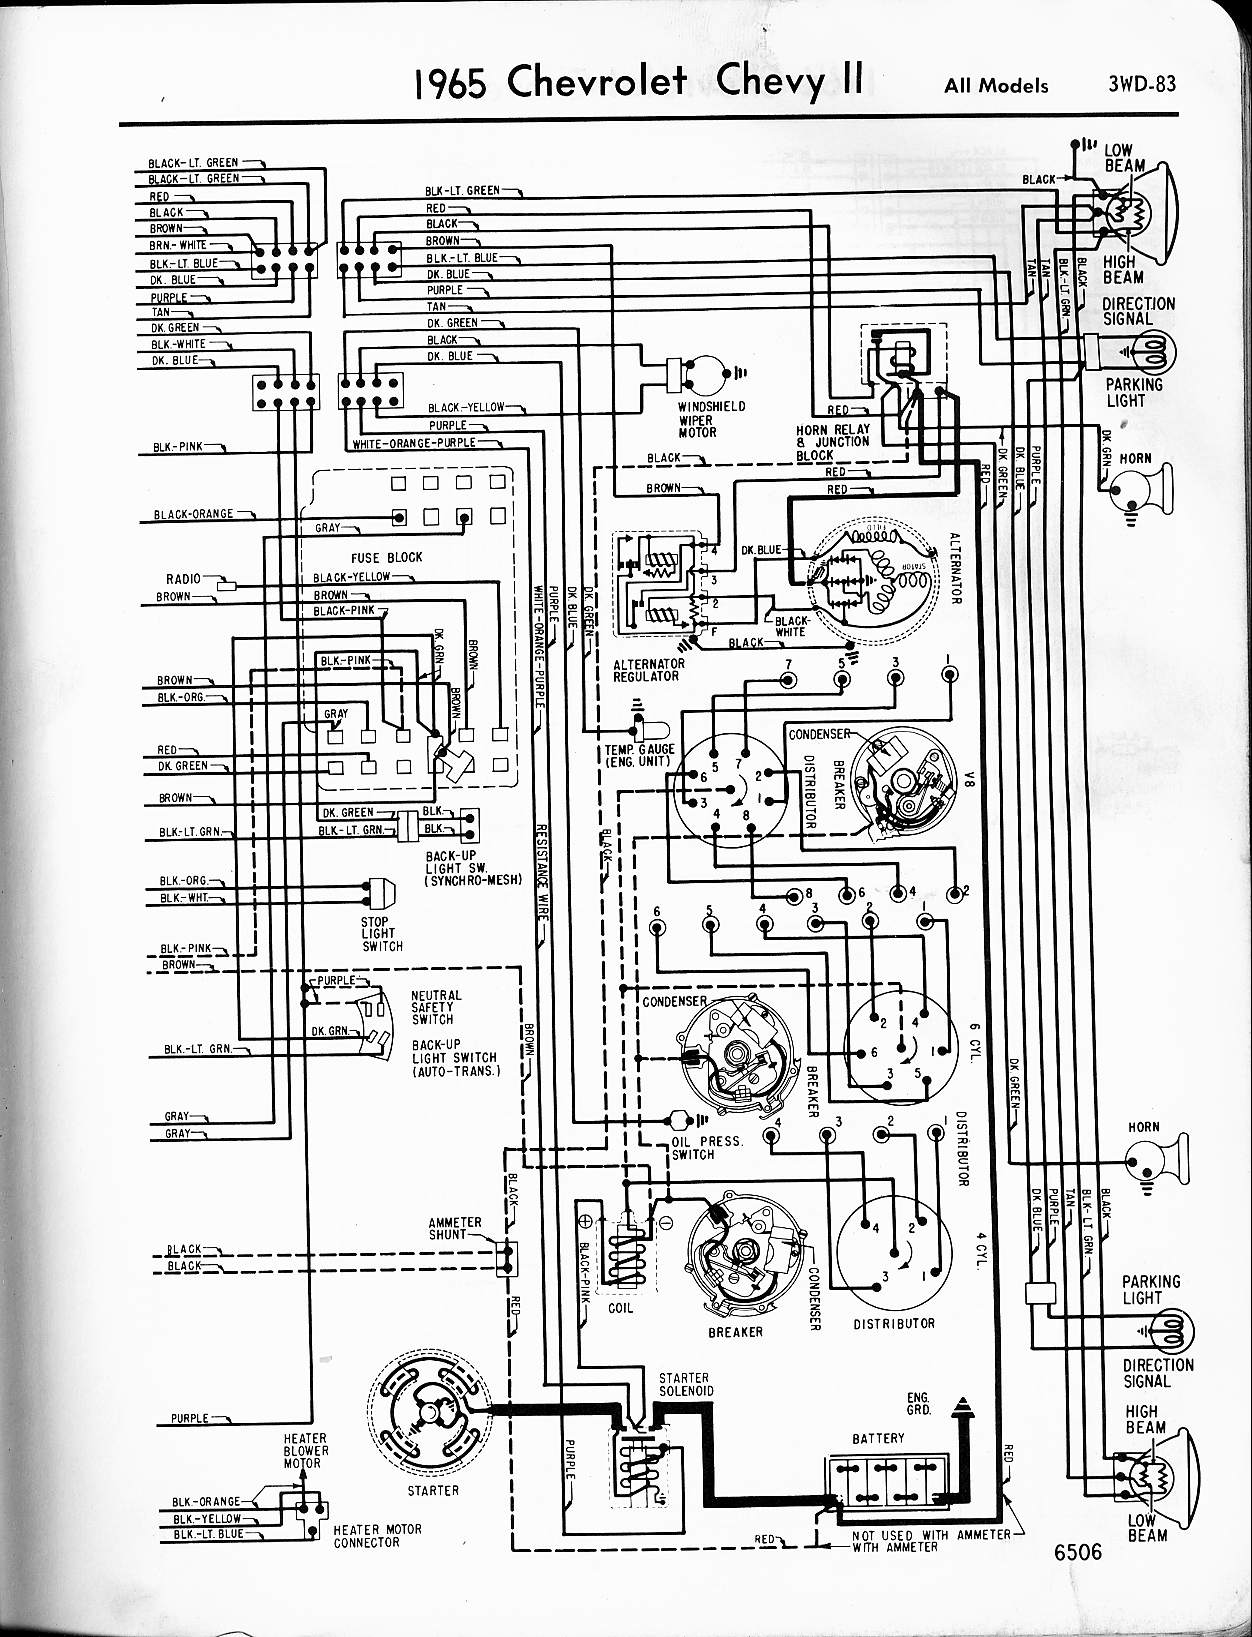 1970 corvette wiring diagram pdf detailed schematics diagram rh  mrskindsclass com 1993 Mustang Wiring Diagram PDF